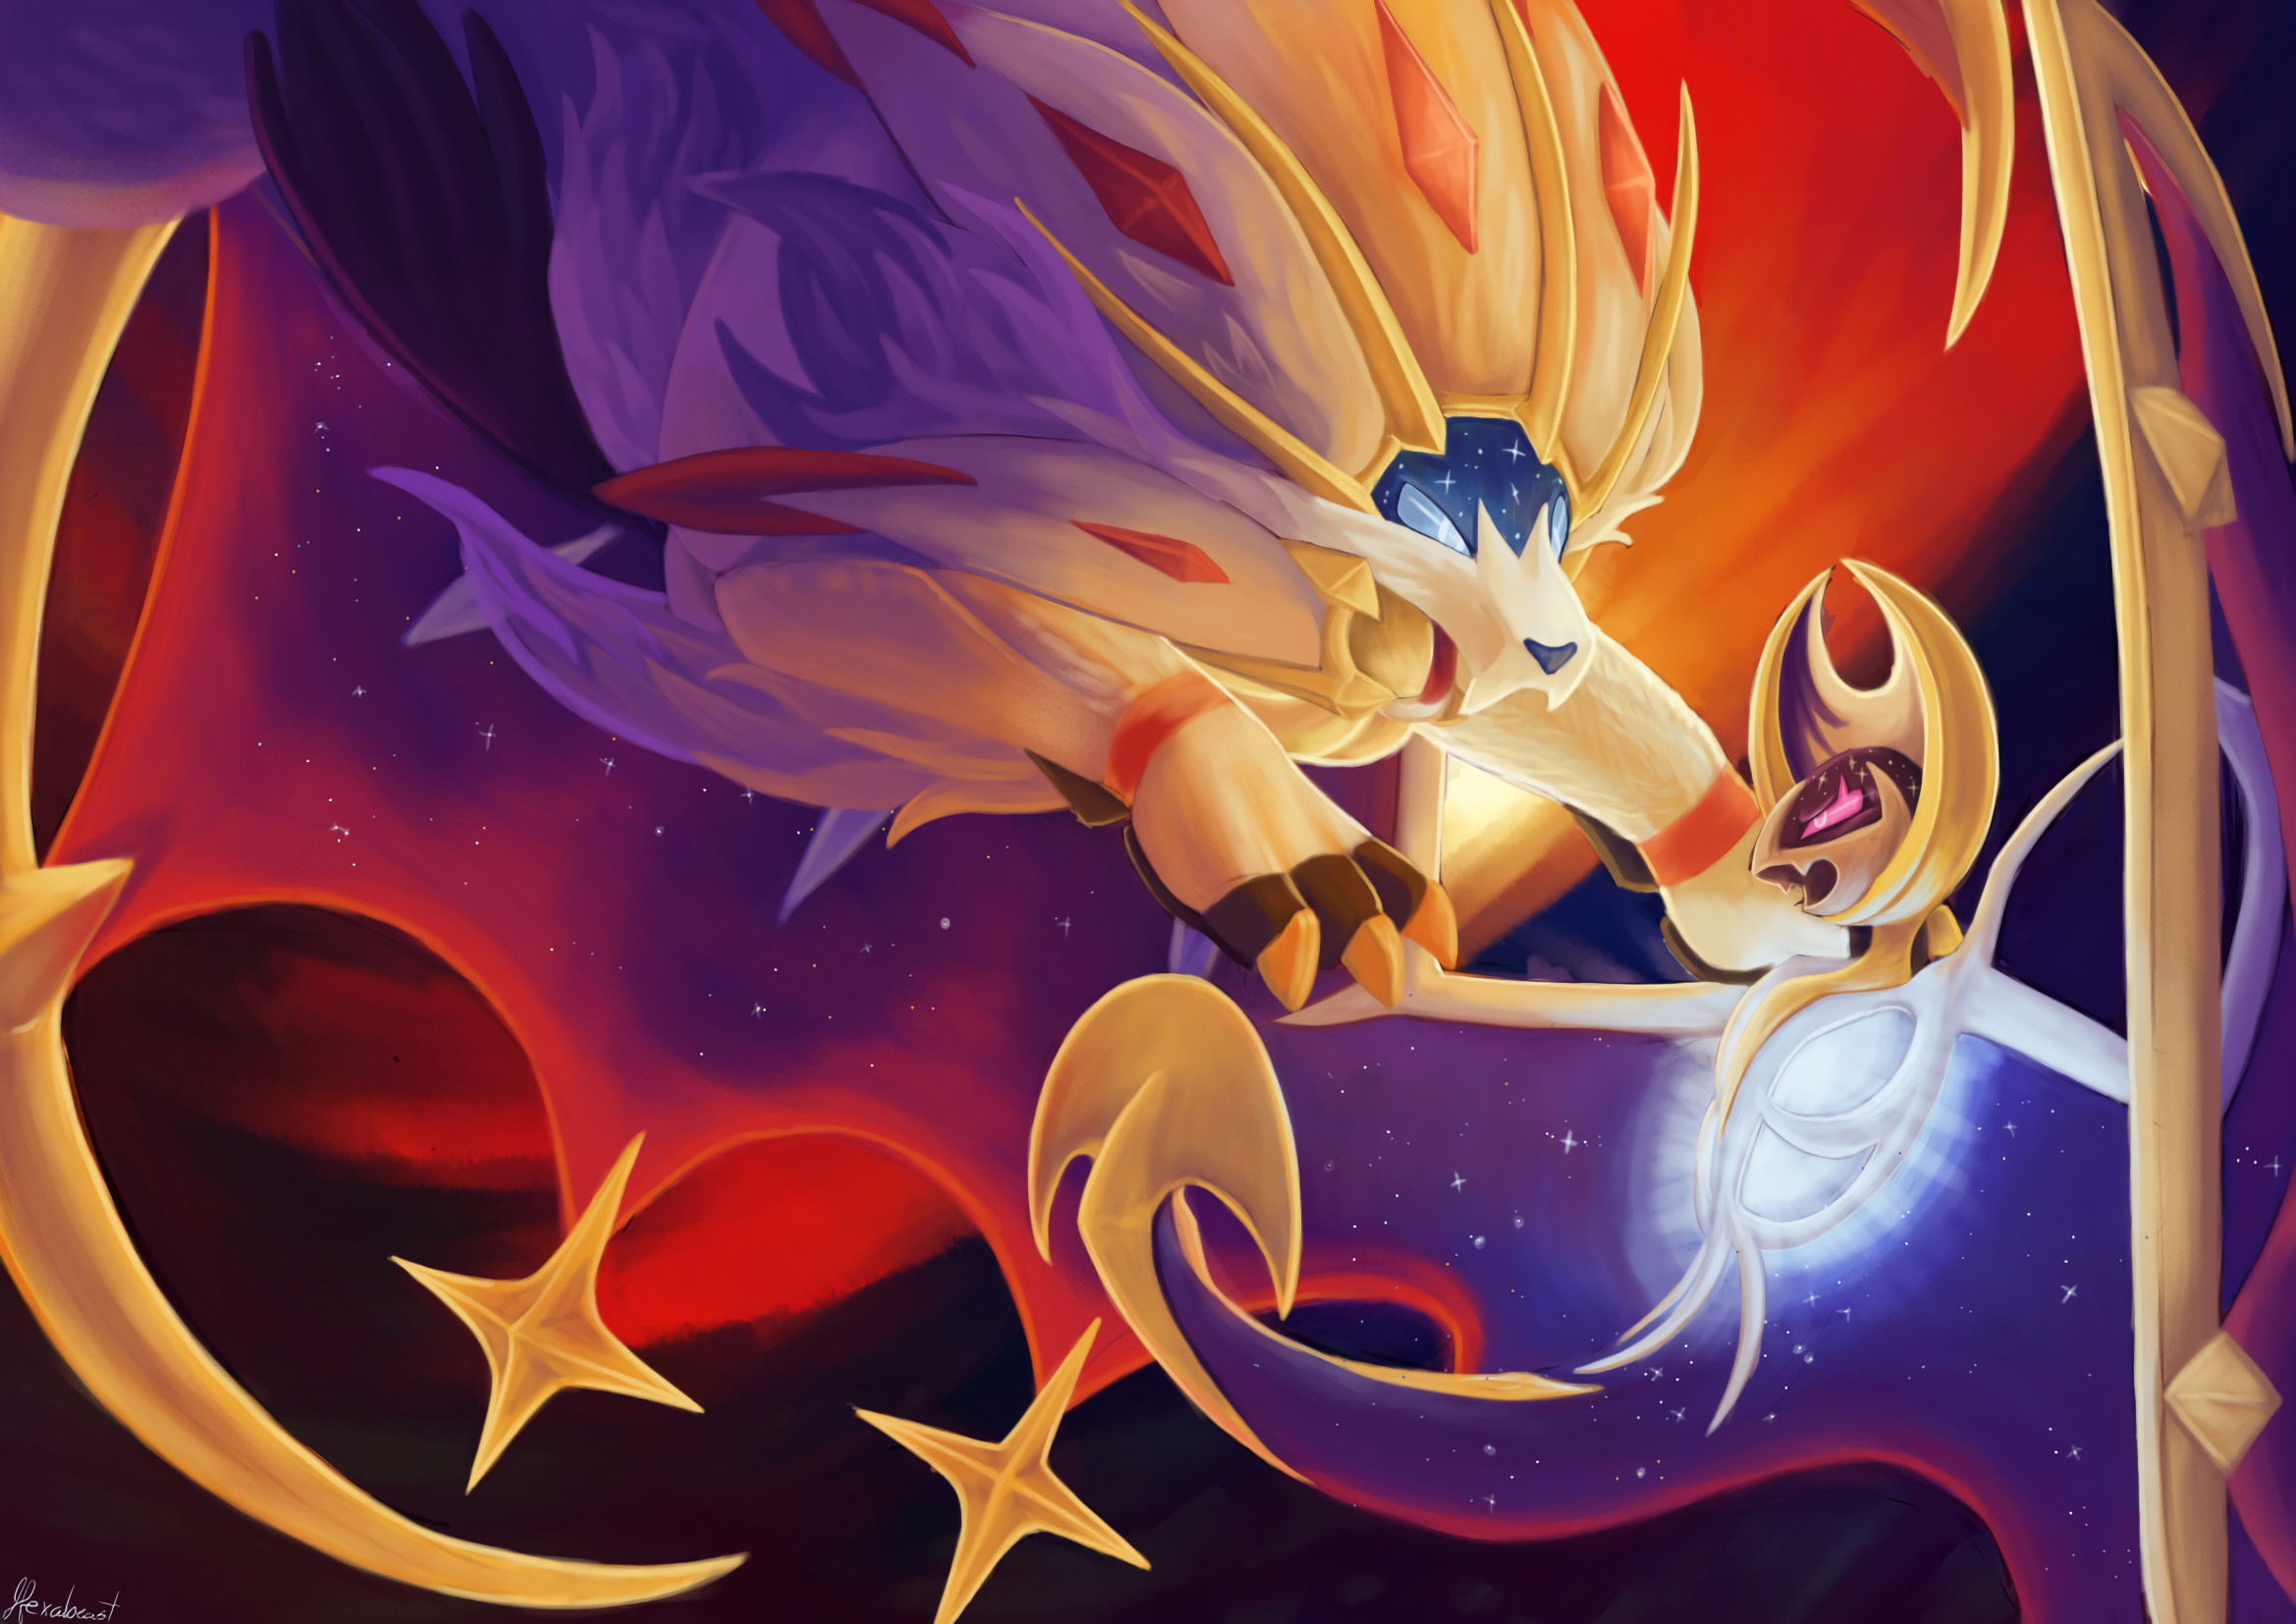 2338x1654 Computerspiele - Pokémon Sun and Moon Lunala (Pokémon) Pokémon Solgaleo  (Pokémon) Pokémon